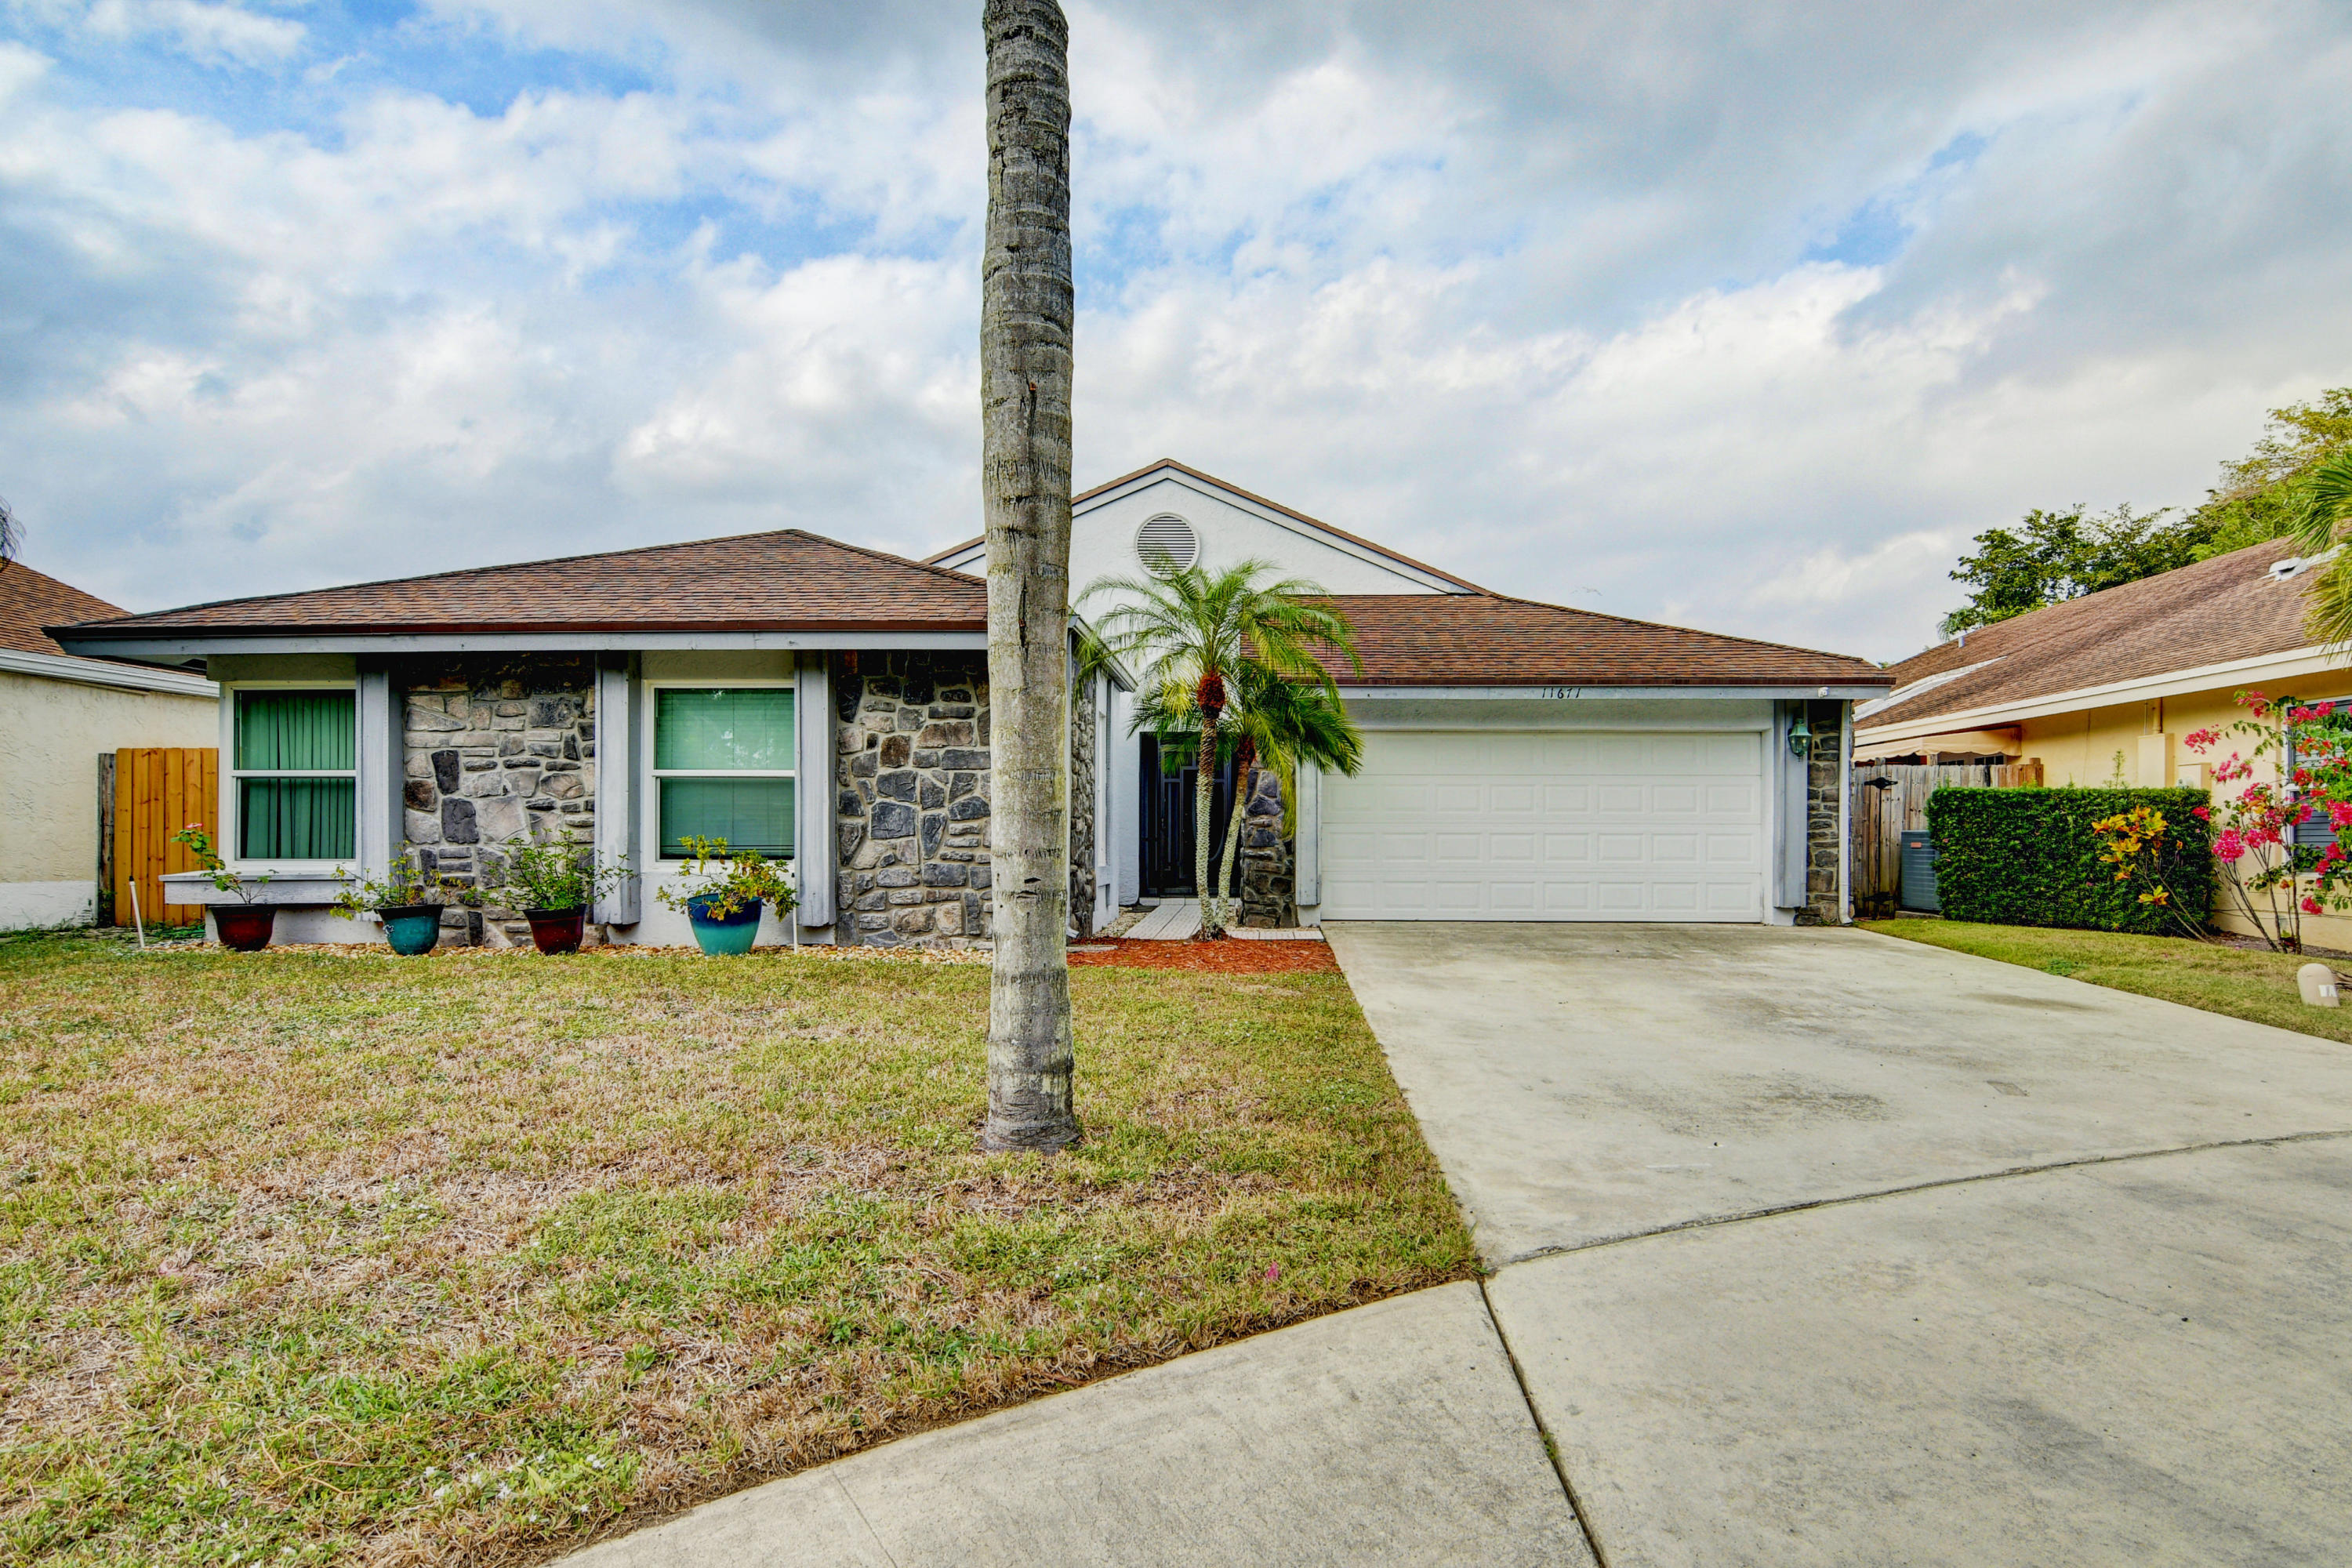 Home for sale in Loggers Run - Country Landing Boca Raton Florida